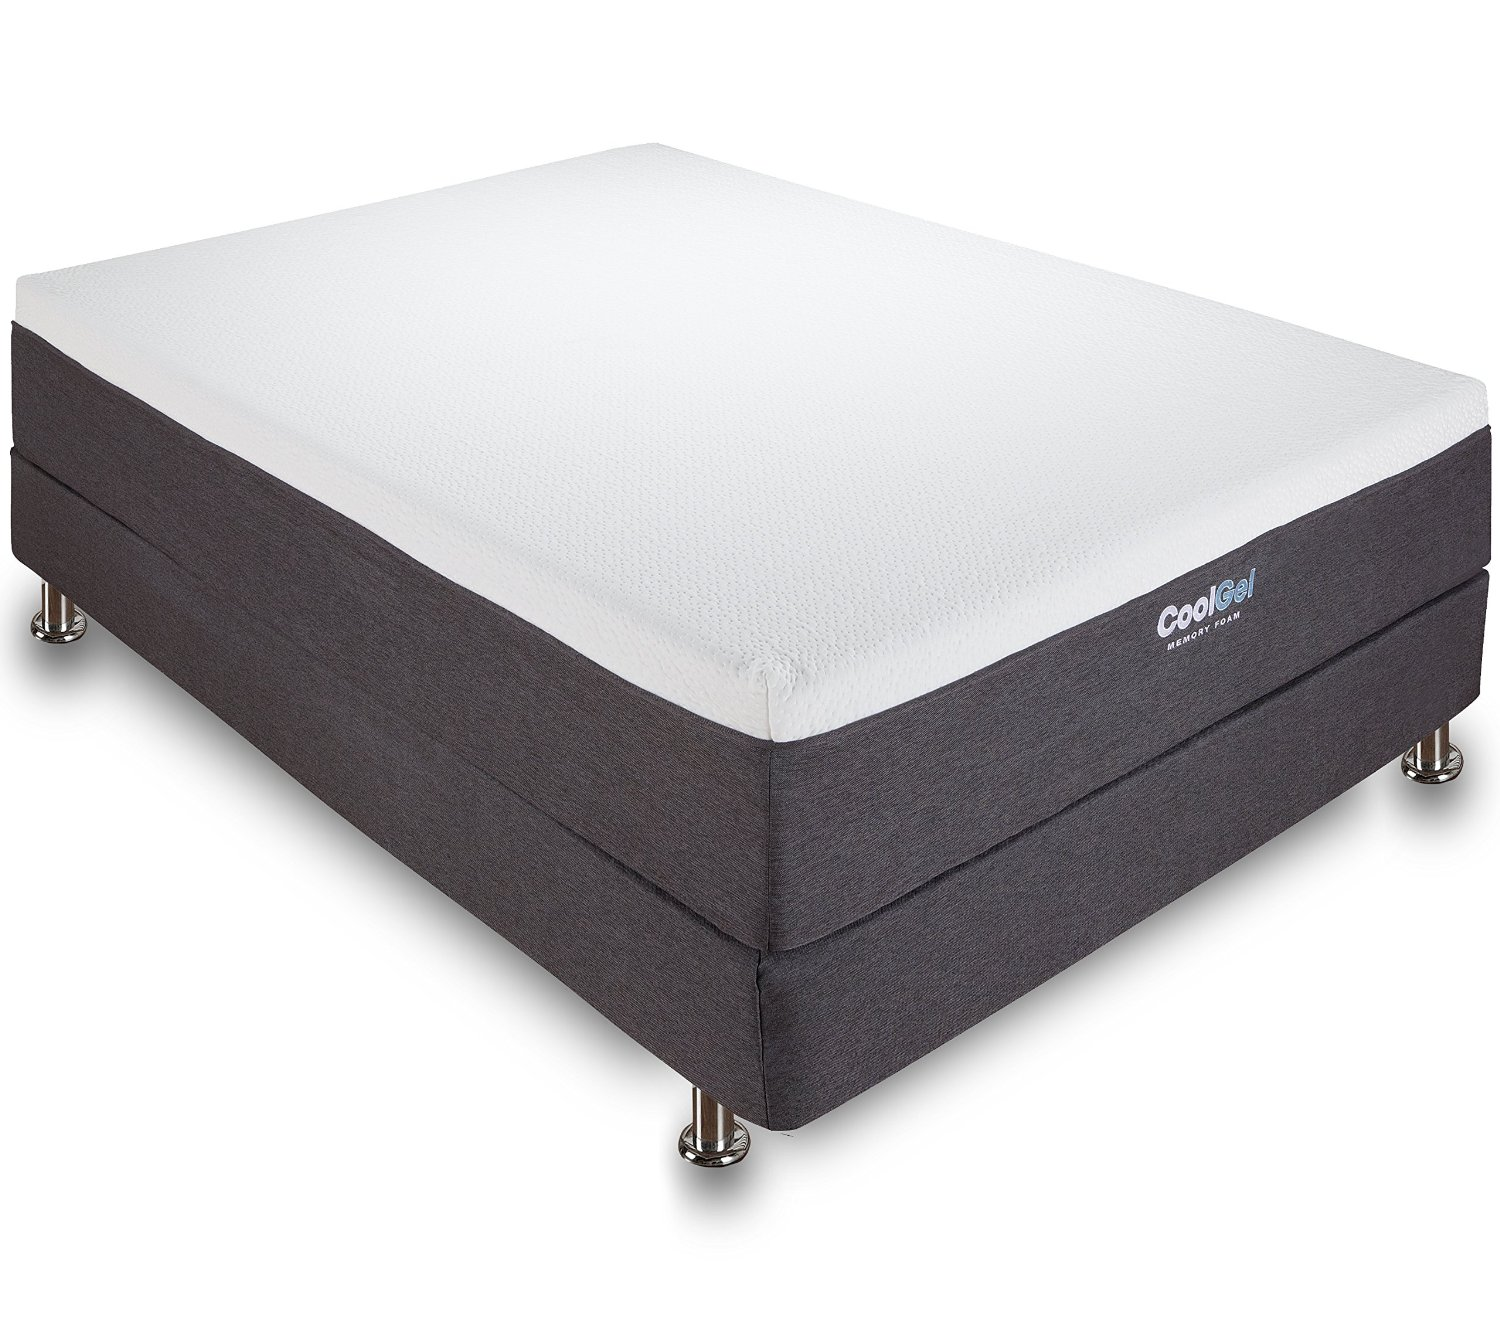 Memory Foam Mattress Too Firm The Classic Brands